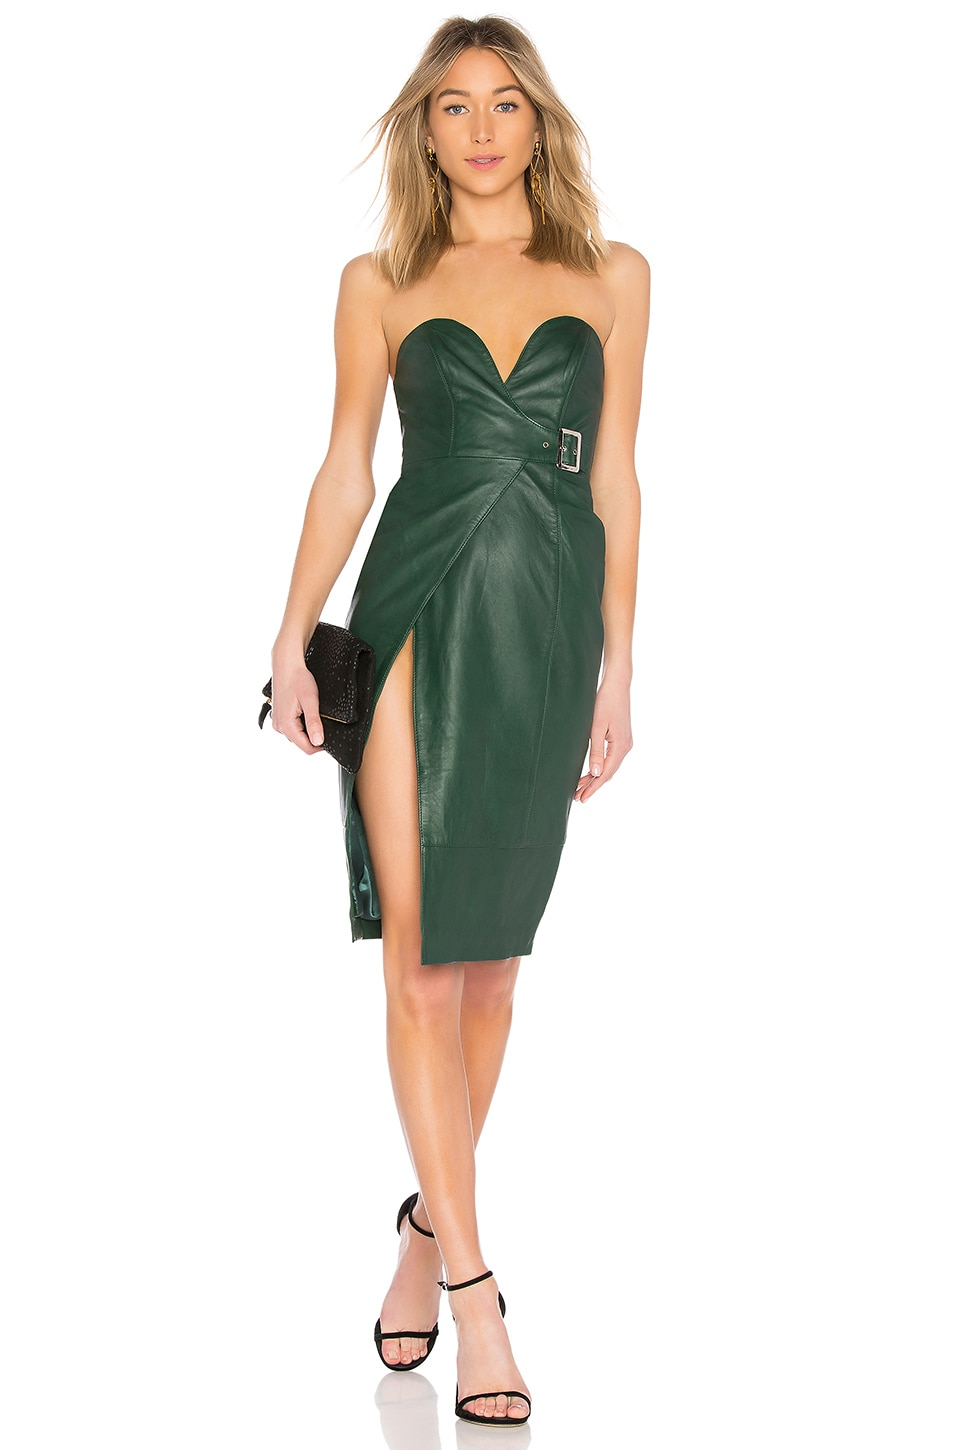 h:ours Doria Leather Dress - Forest